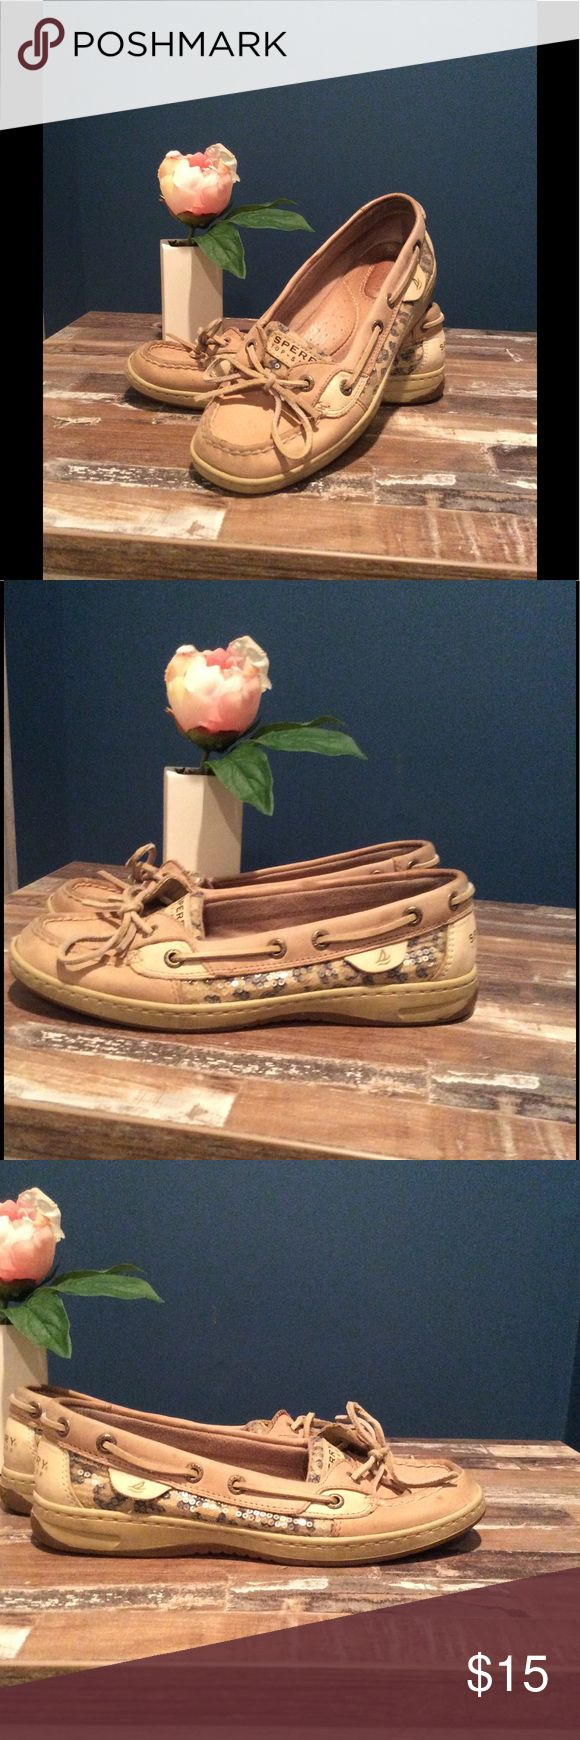 Sperry Angelfish Sequin Leopard Print Boat Shoes💗 Used Sperry Angelfish boat shoes size 7! Leopard print pattern with clear sequins. Visible signs of wear inside and outside as shown in pictures, but absolutely still wearable! Offers welcome- bundle and save more! Sperry Top-Sider Shoes Flats & Loafers